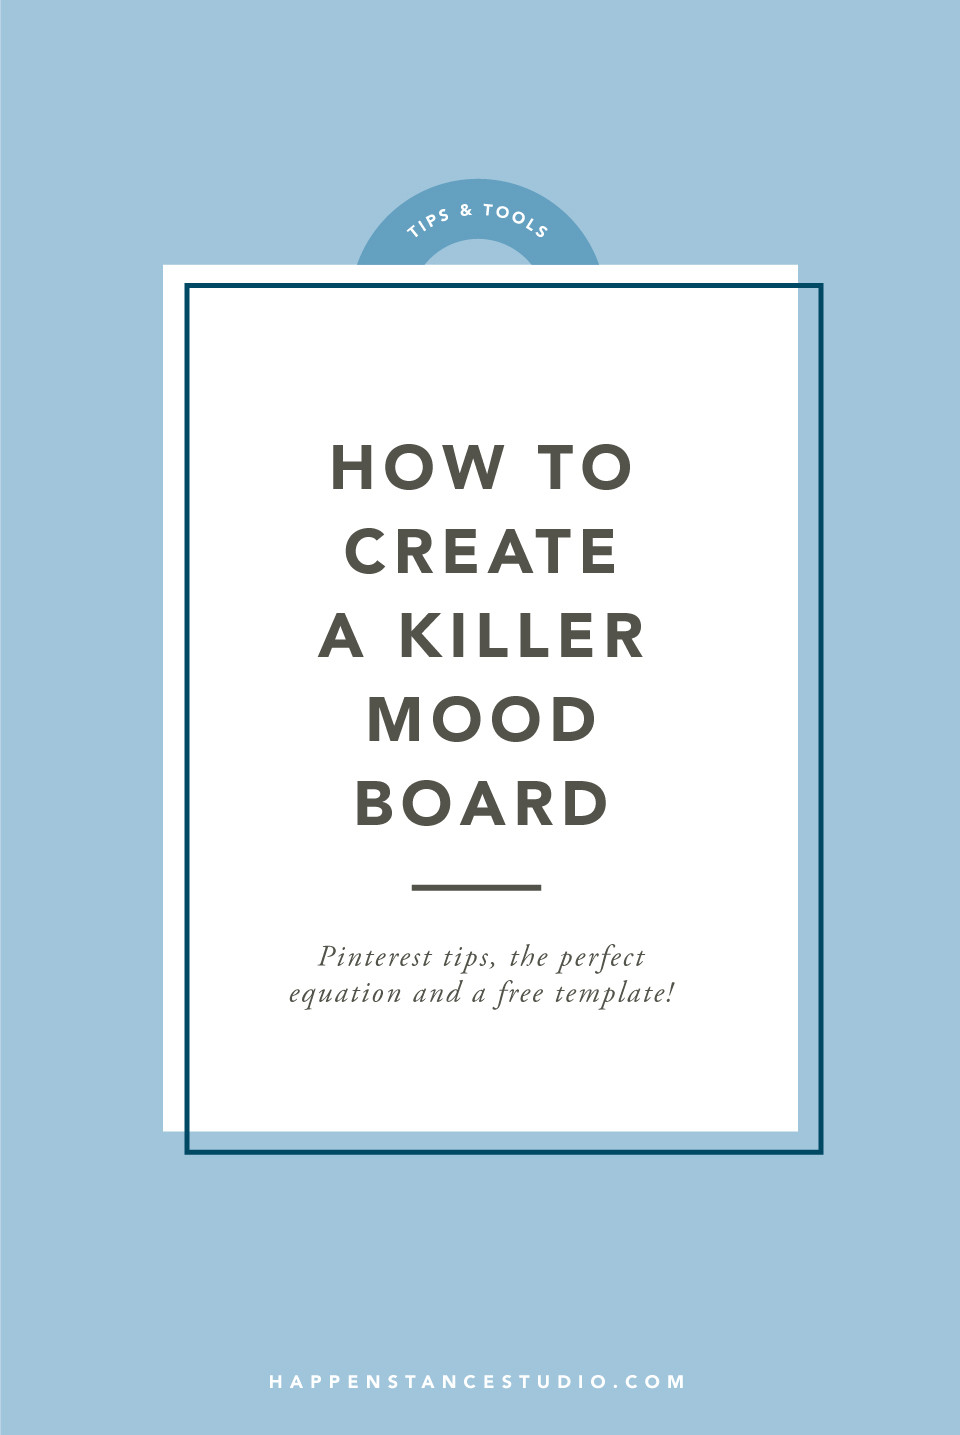 How to Create  Killer Mood Board // Pinterest tips, the perfect equation and a free template!